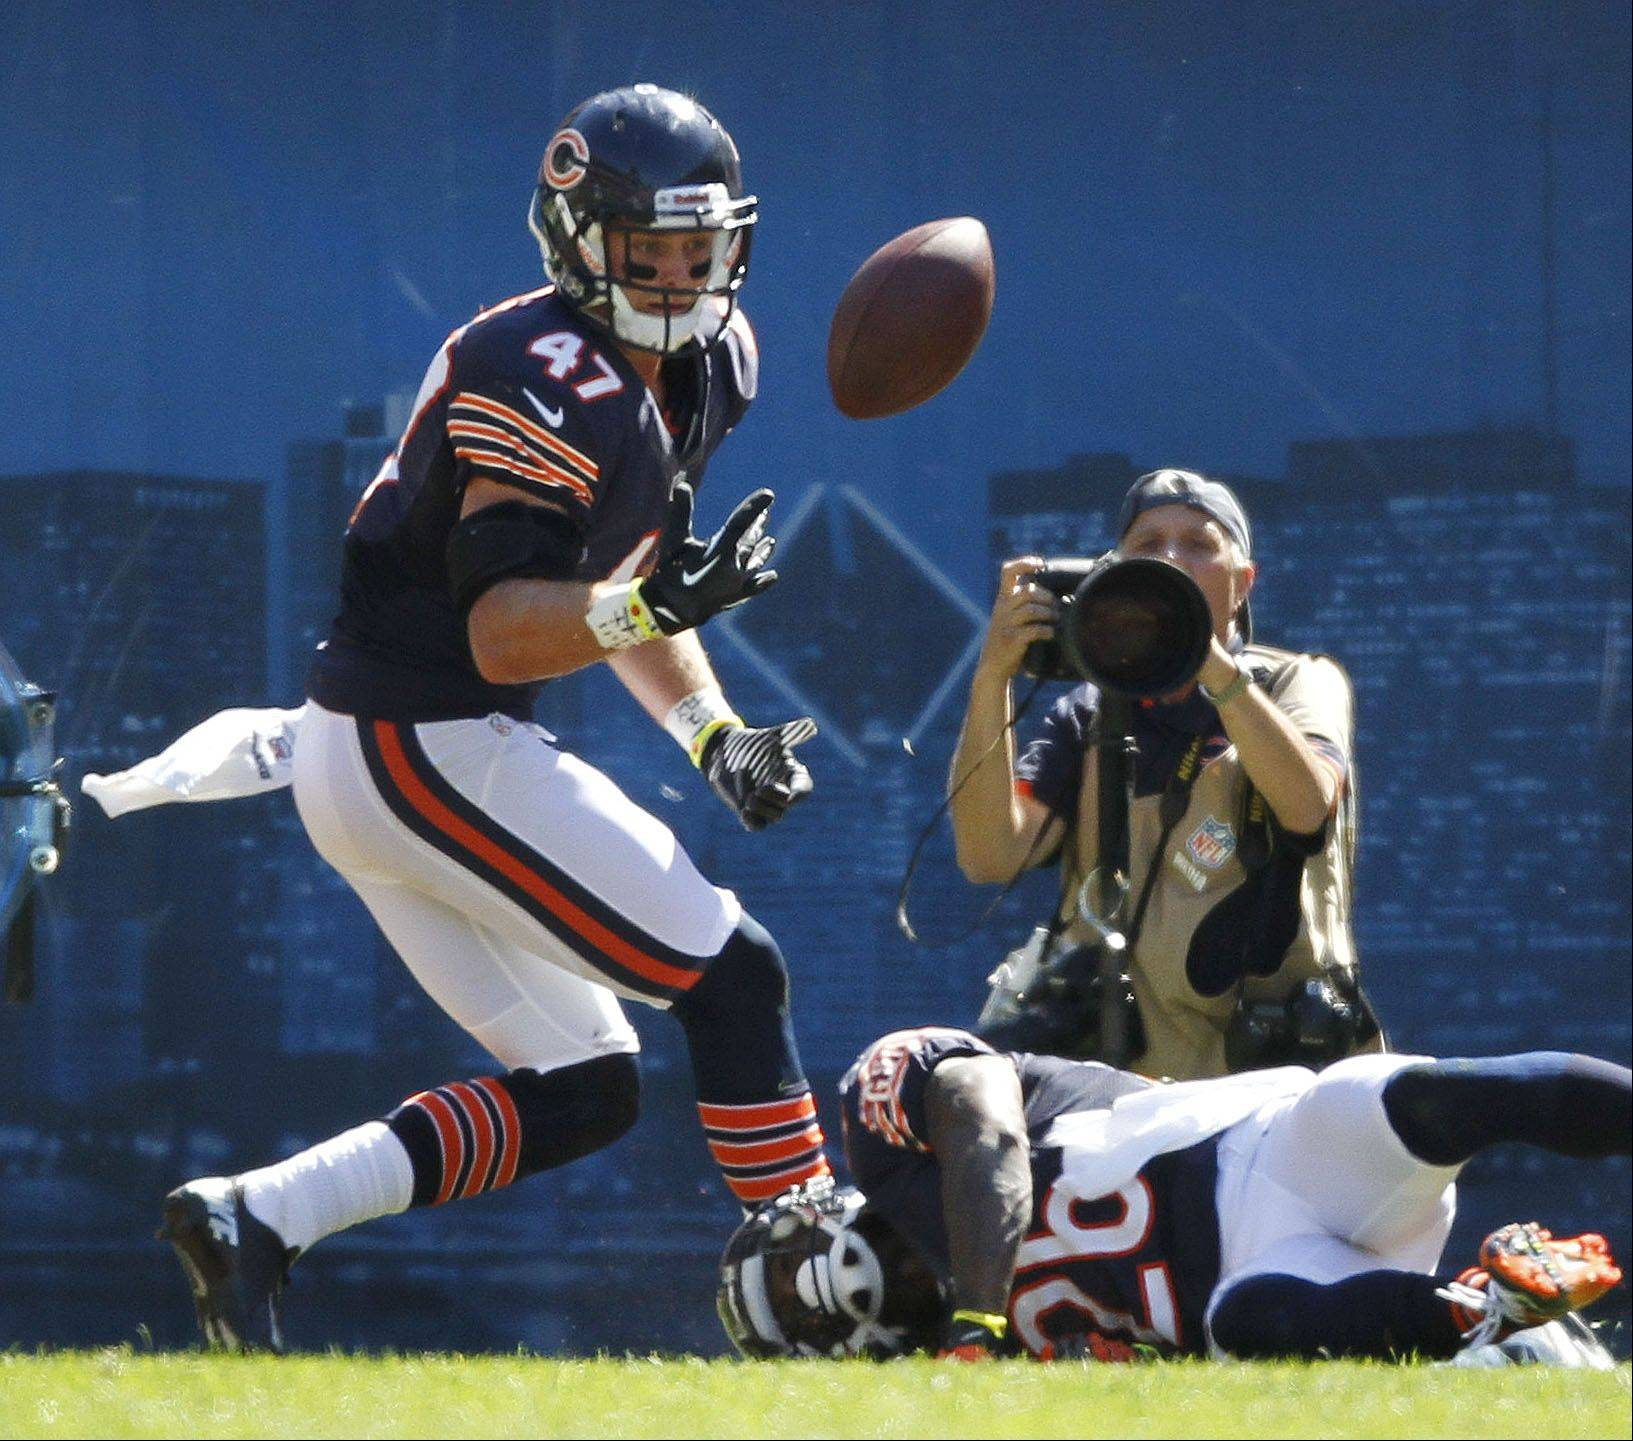 Chicago Bears free safety Chris Conte makes an interception in the endzpne after the play was broken up by Chicago Bears cornerback Tim Jennings during the Bears season opener.